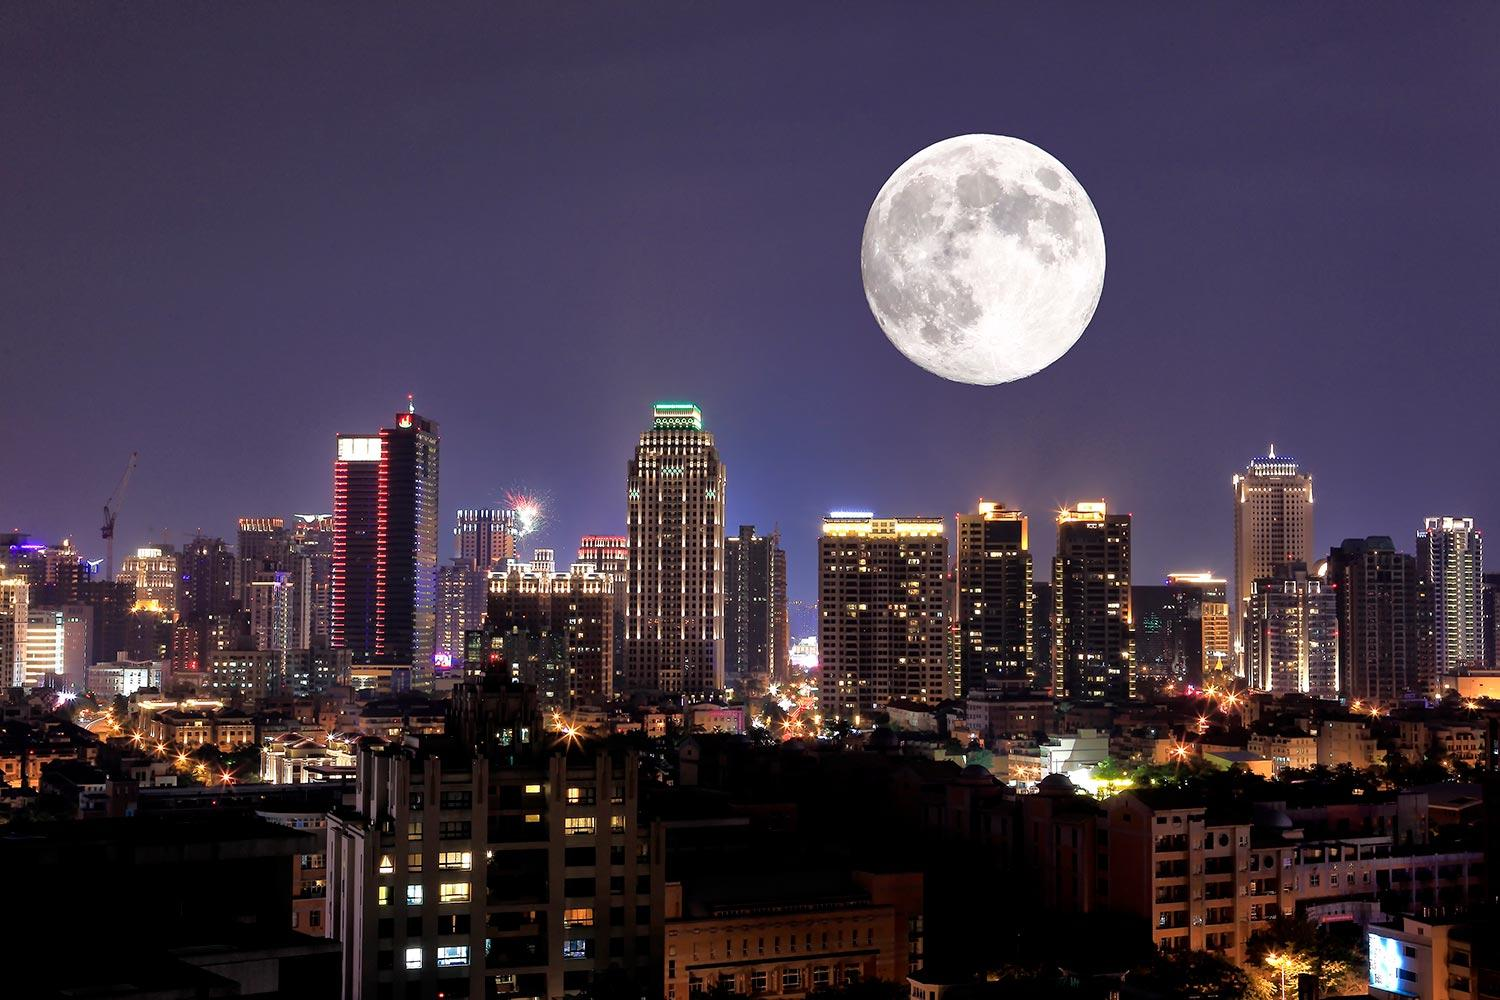 Full moon over city of Taichung Taiwan